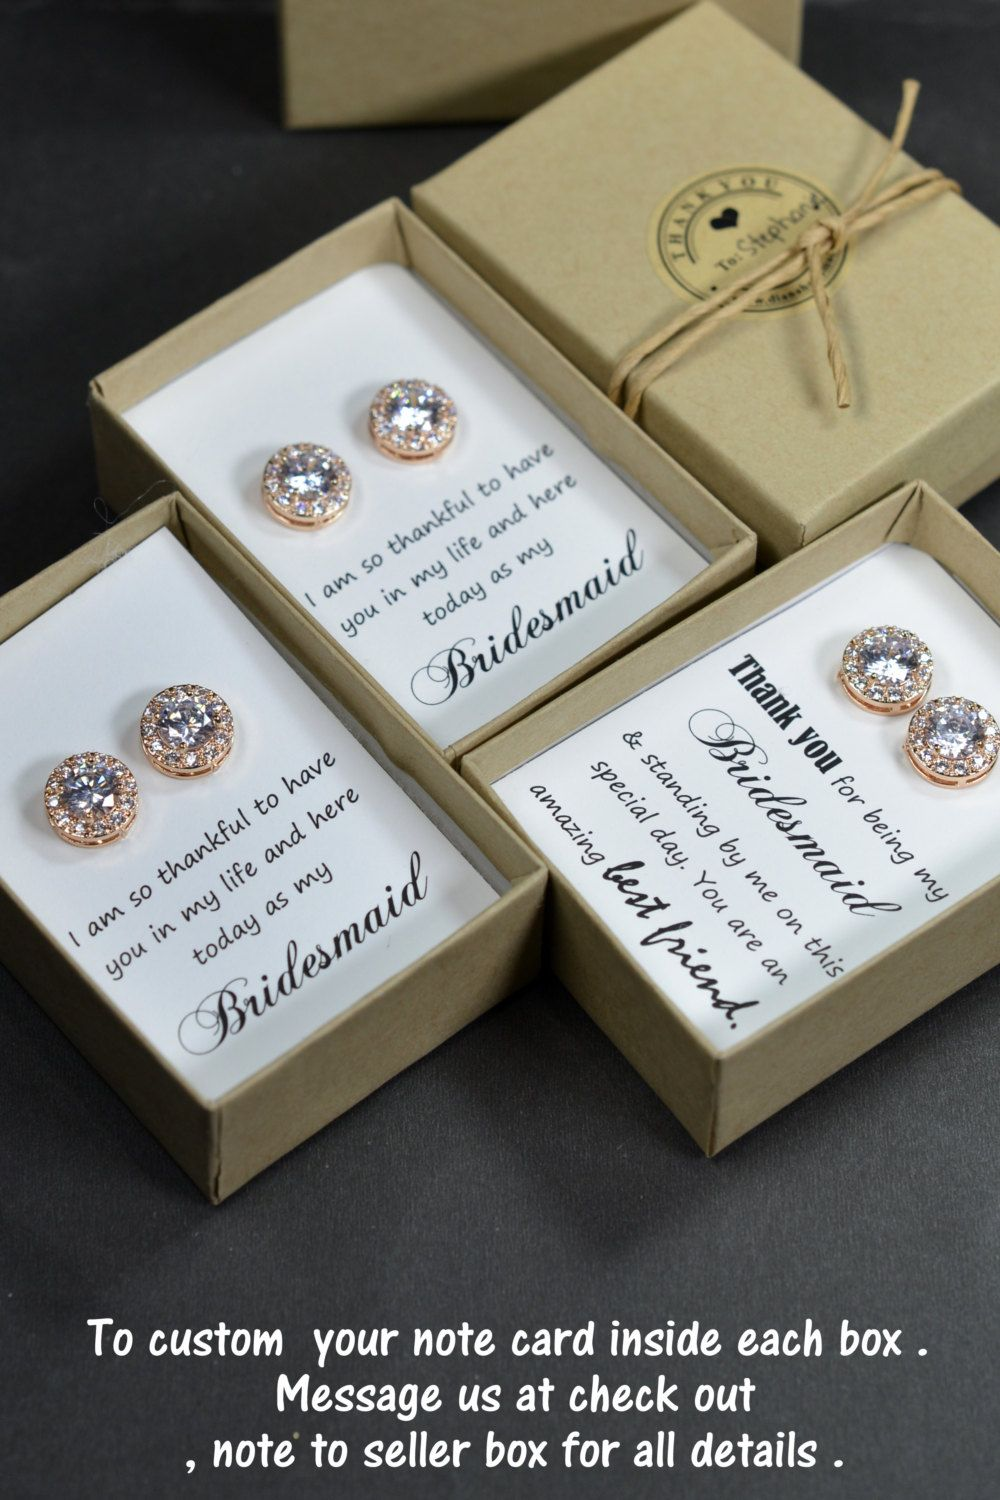 Bridesmaids Gifts Spring Wedding Be My Bridesmaid Card Rose Gold Bridesmaids Earrings Personali Invitación Padrinos De Boda Recuerdos De Boda Padrinos De Boda